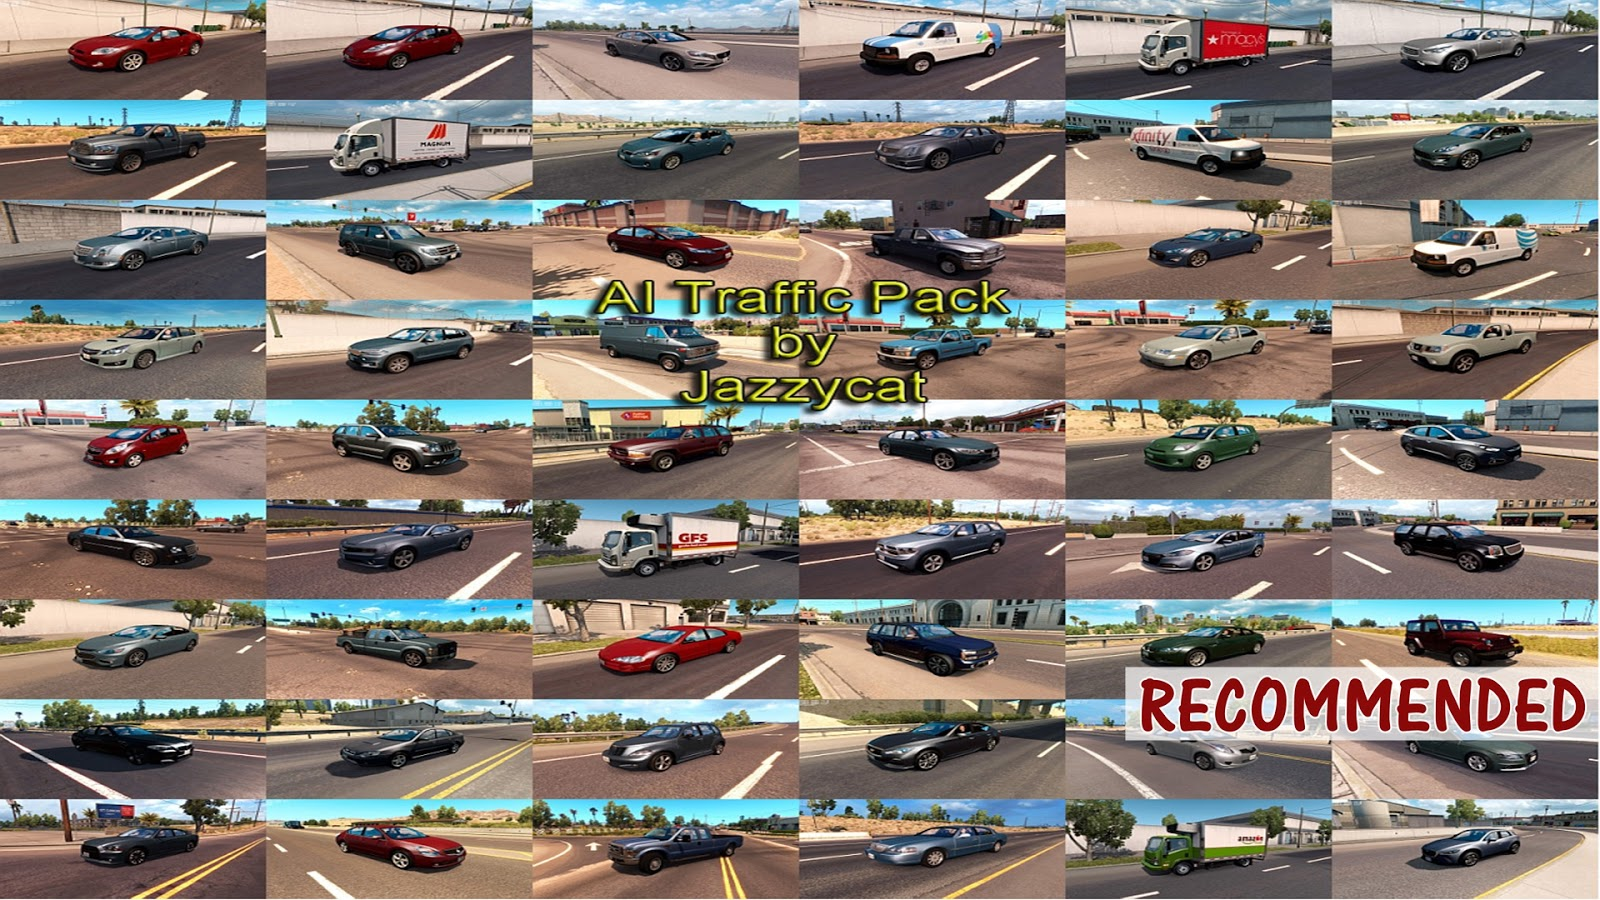 Sinagrit Baba's Workshop: ATS - AI Traffic Pack v6 5 by Jazzycat